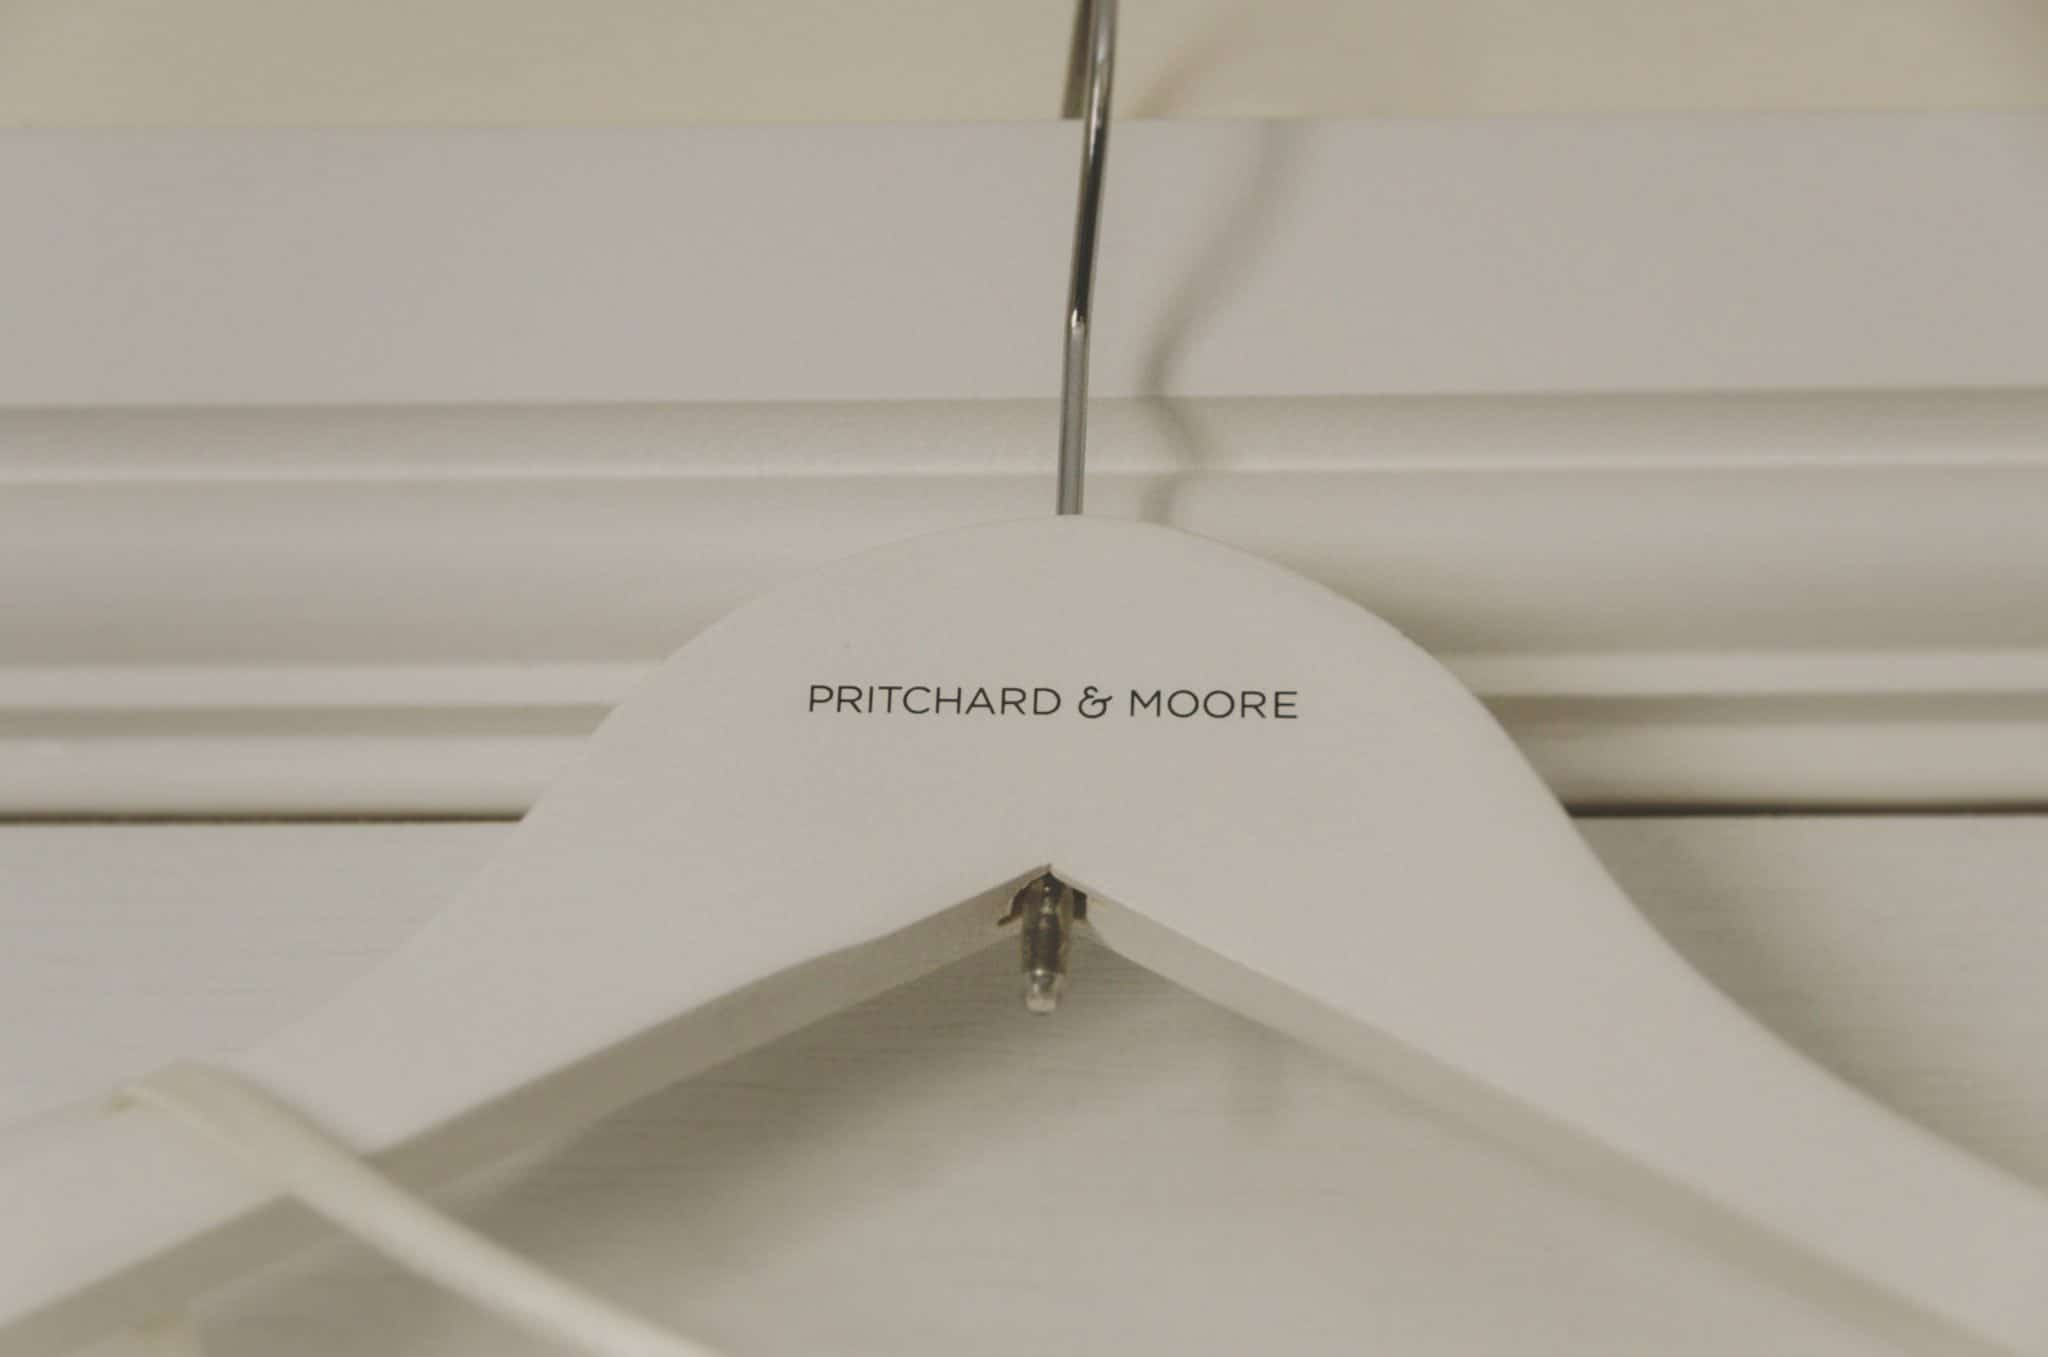 Coat hanger with Pritchard and Moore written on it